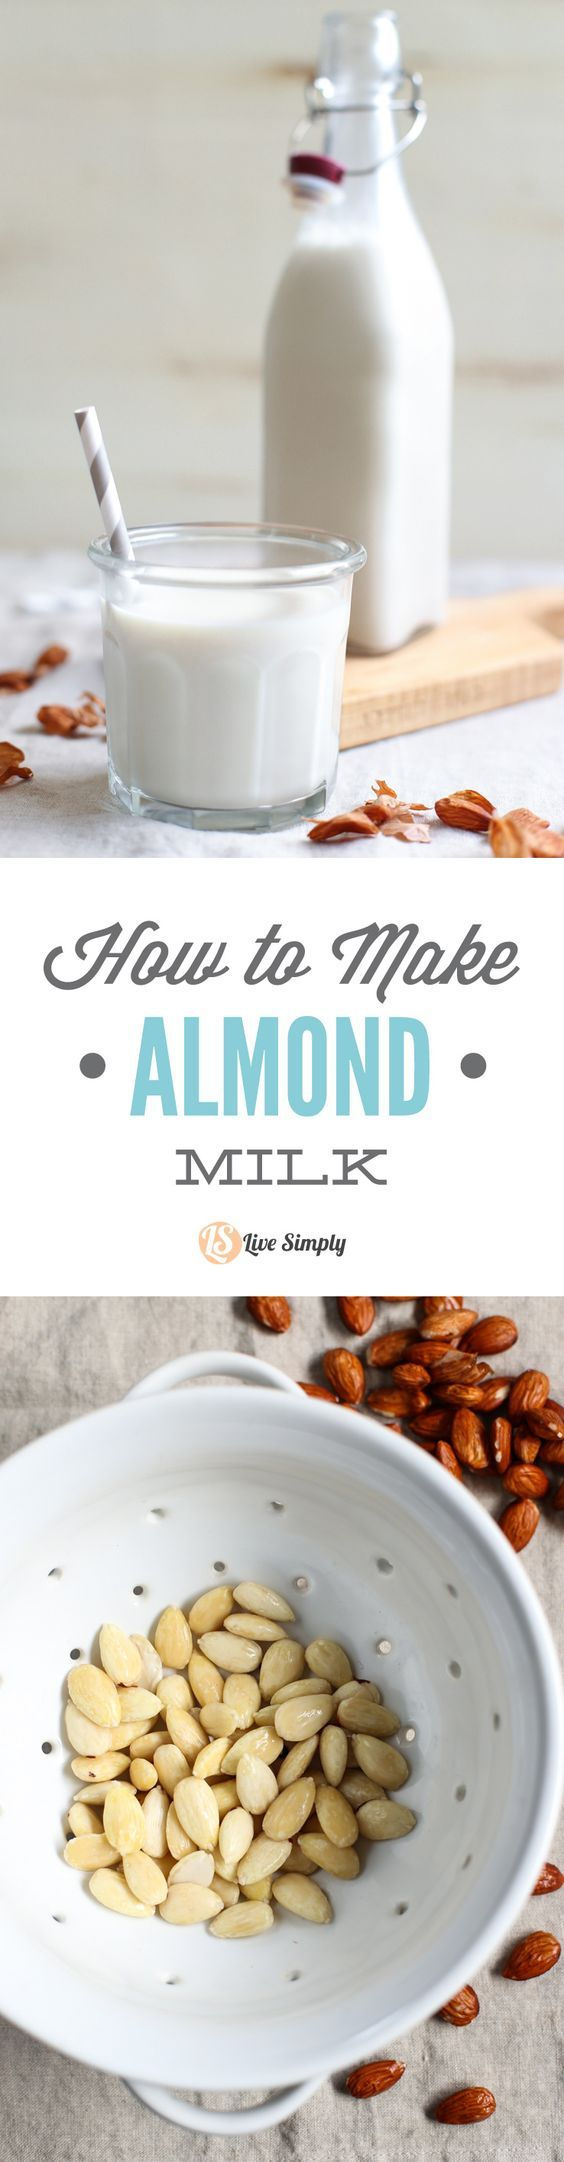 Almond Milk Meme Video